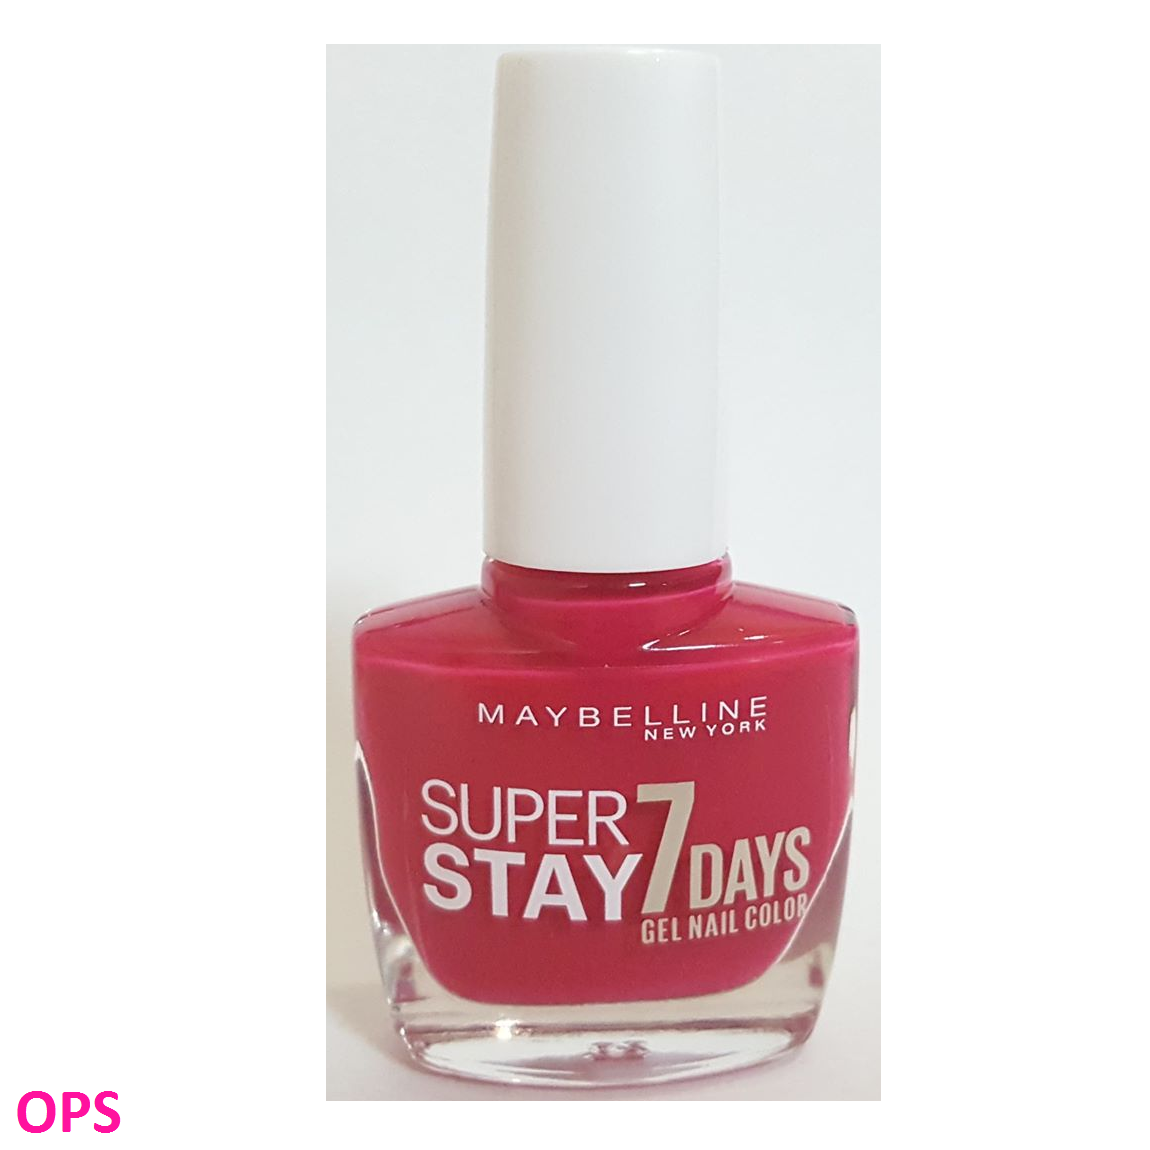 Maybelline NEW YORK SUPERSTAY 7 DAYS GEL NAIL COLOR ROSY PINK